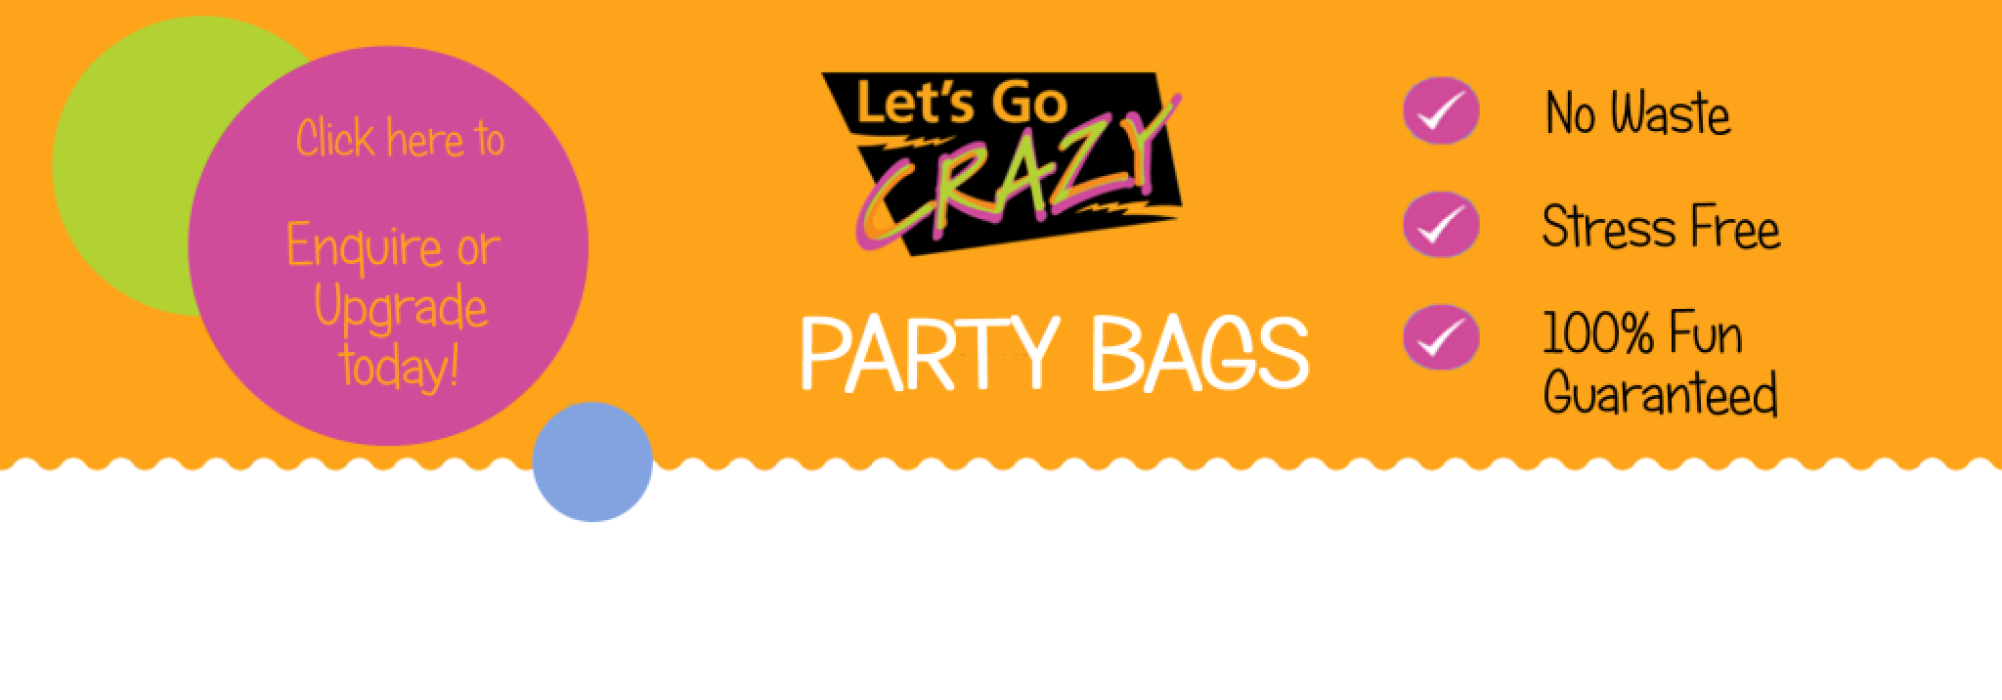 Lets Go Crazy Party Bags